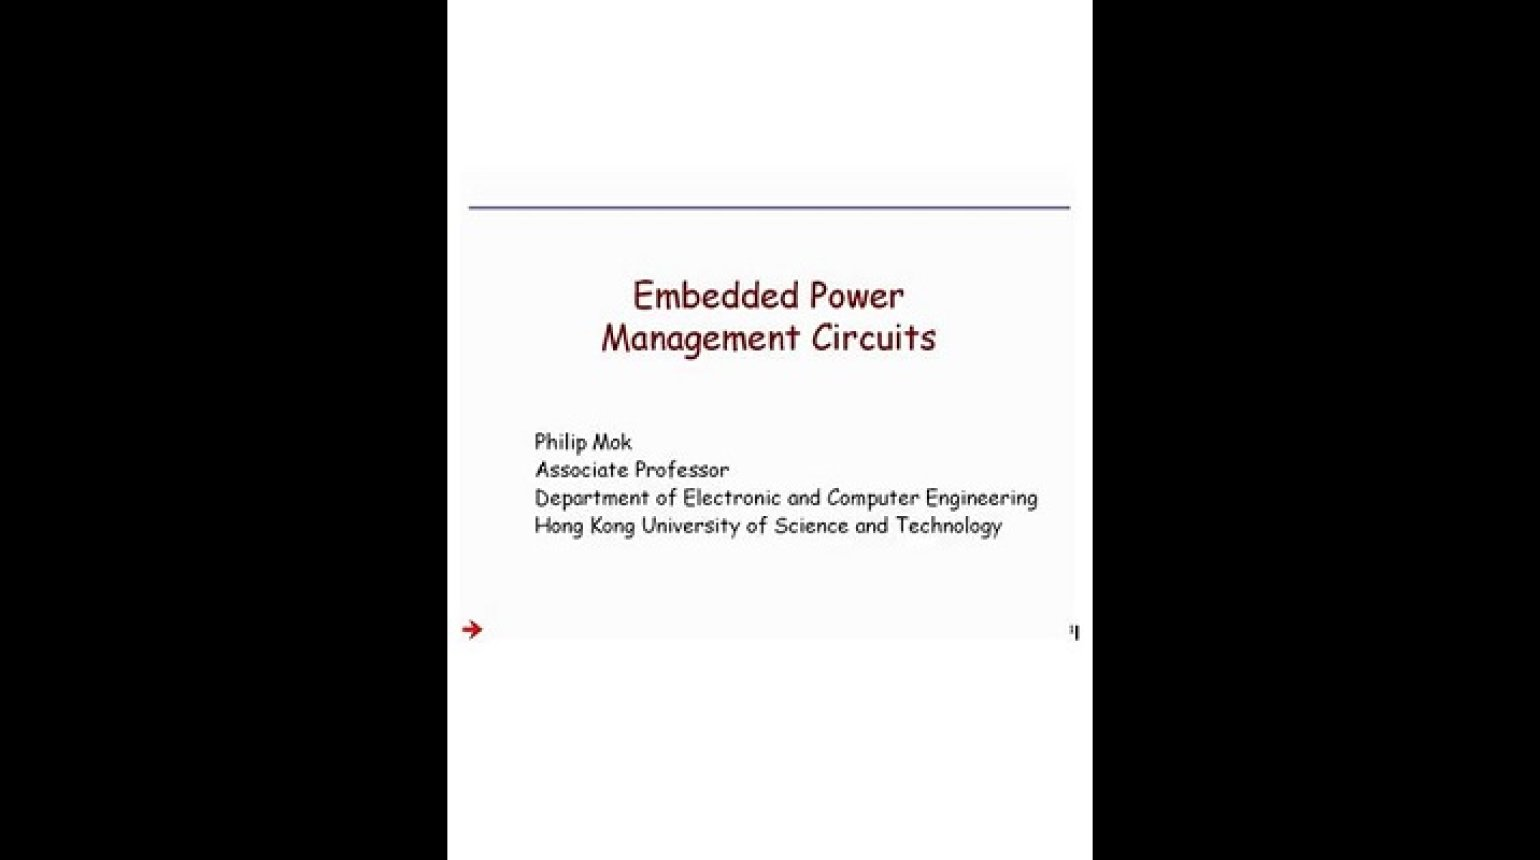 Embedded Power Management Circuits Video